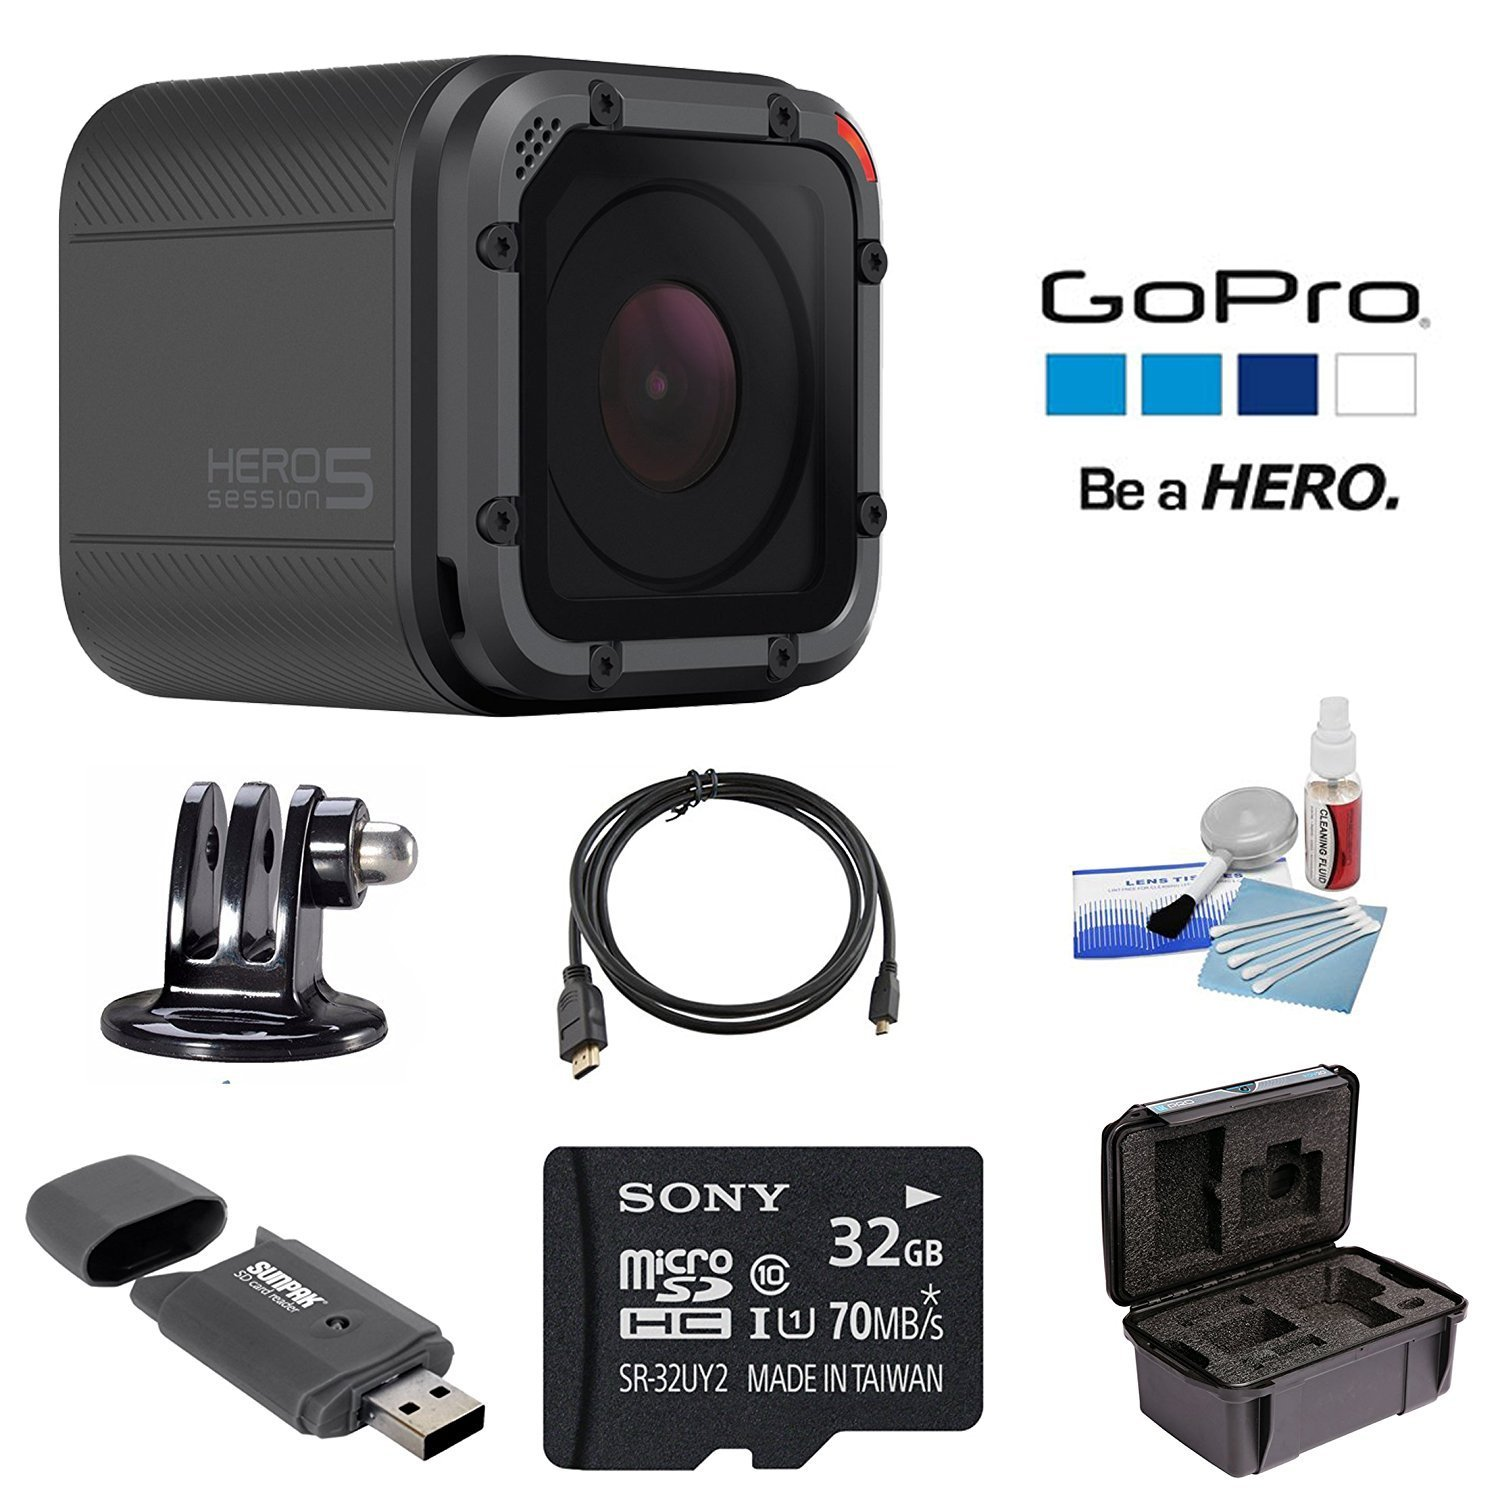 Includes Standard SD Adapter. lossless recording Professional Ultra SanDisk 32GB MicroSDHC Card for GoPro HD Hero 2 HD Camcorder is custom formatted for high speed UHS-1 Class 10 Certified 30MB//sec